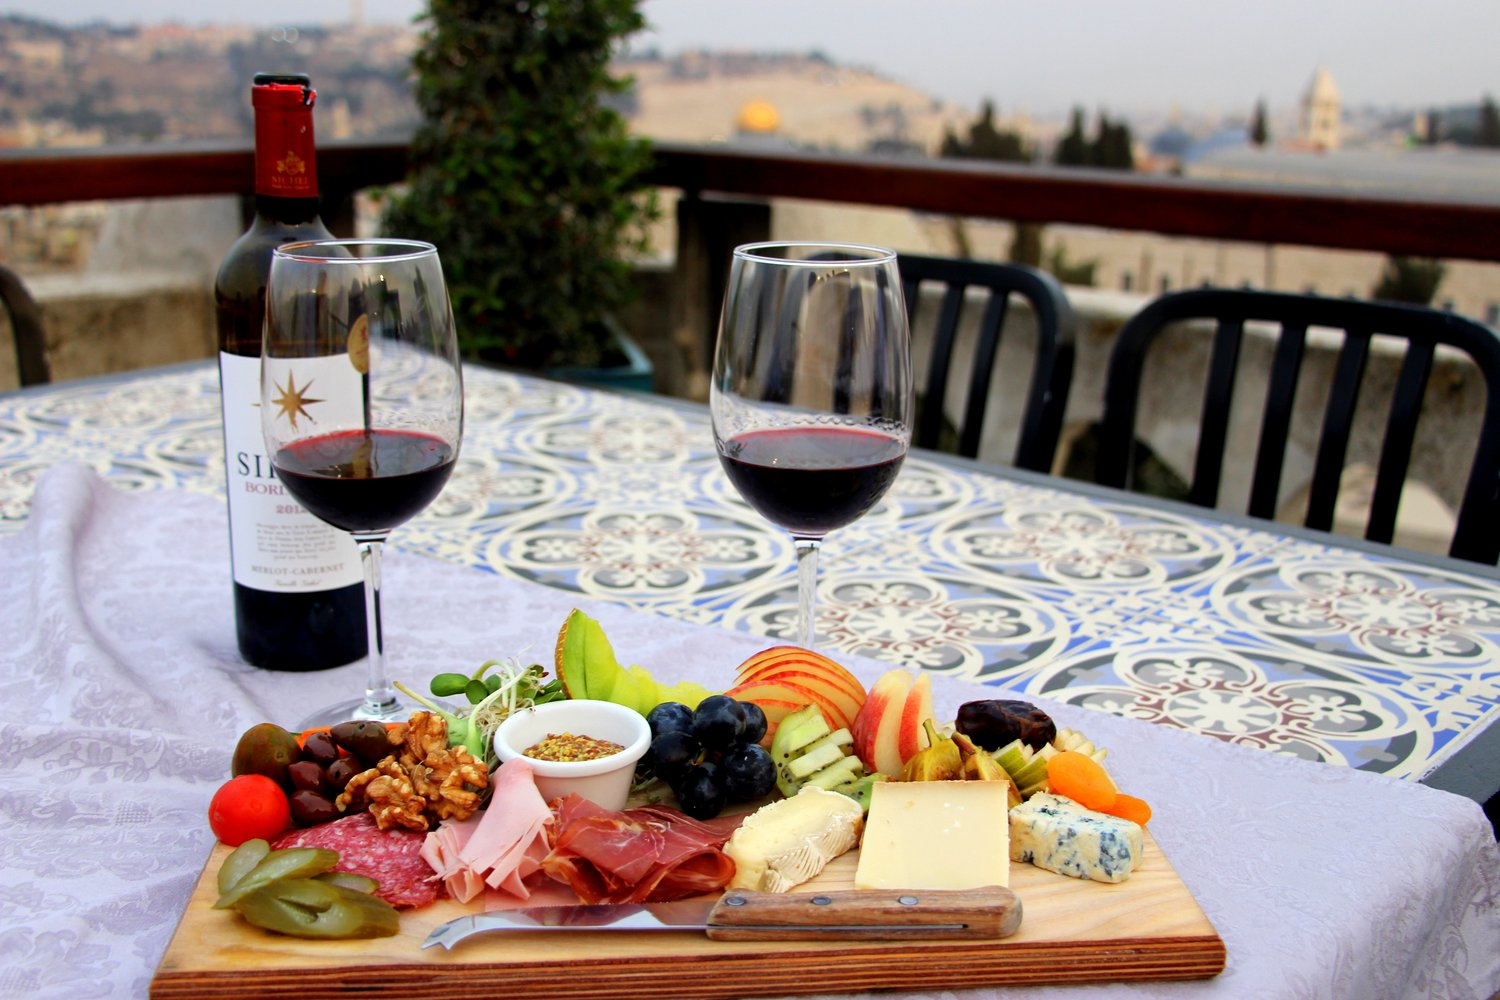 Wine and Cheese, Notre Dame dinner, Jerusalem, Old City, Israel